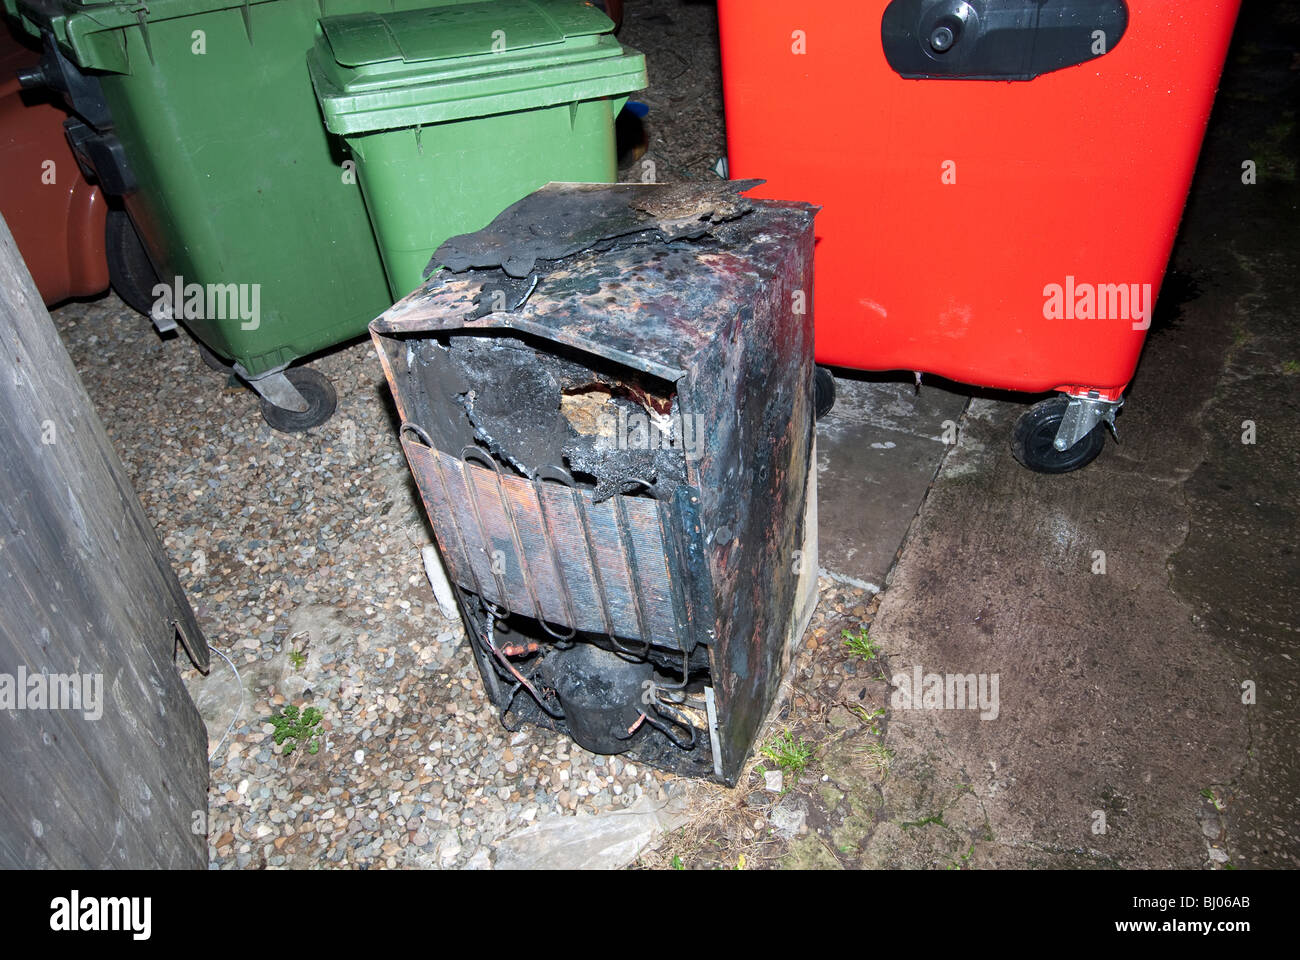 Household fridge burnt out following accidental fire - Stock Image